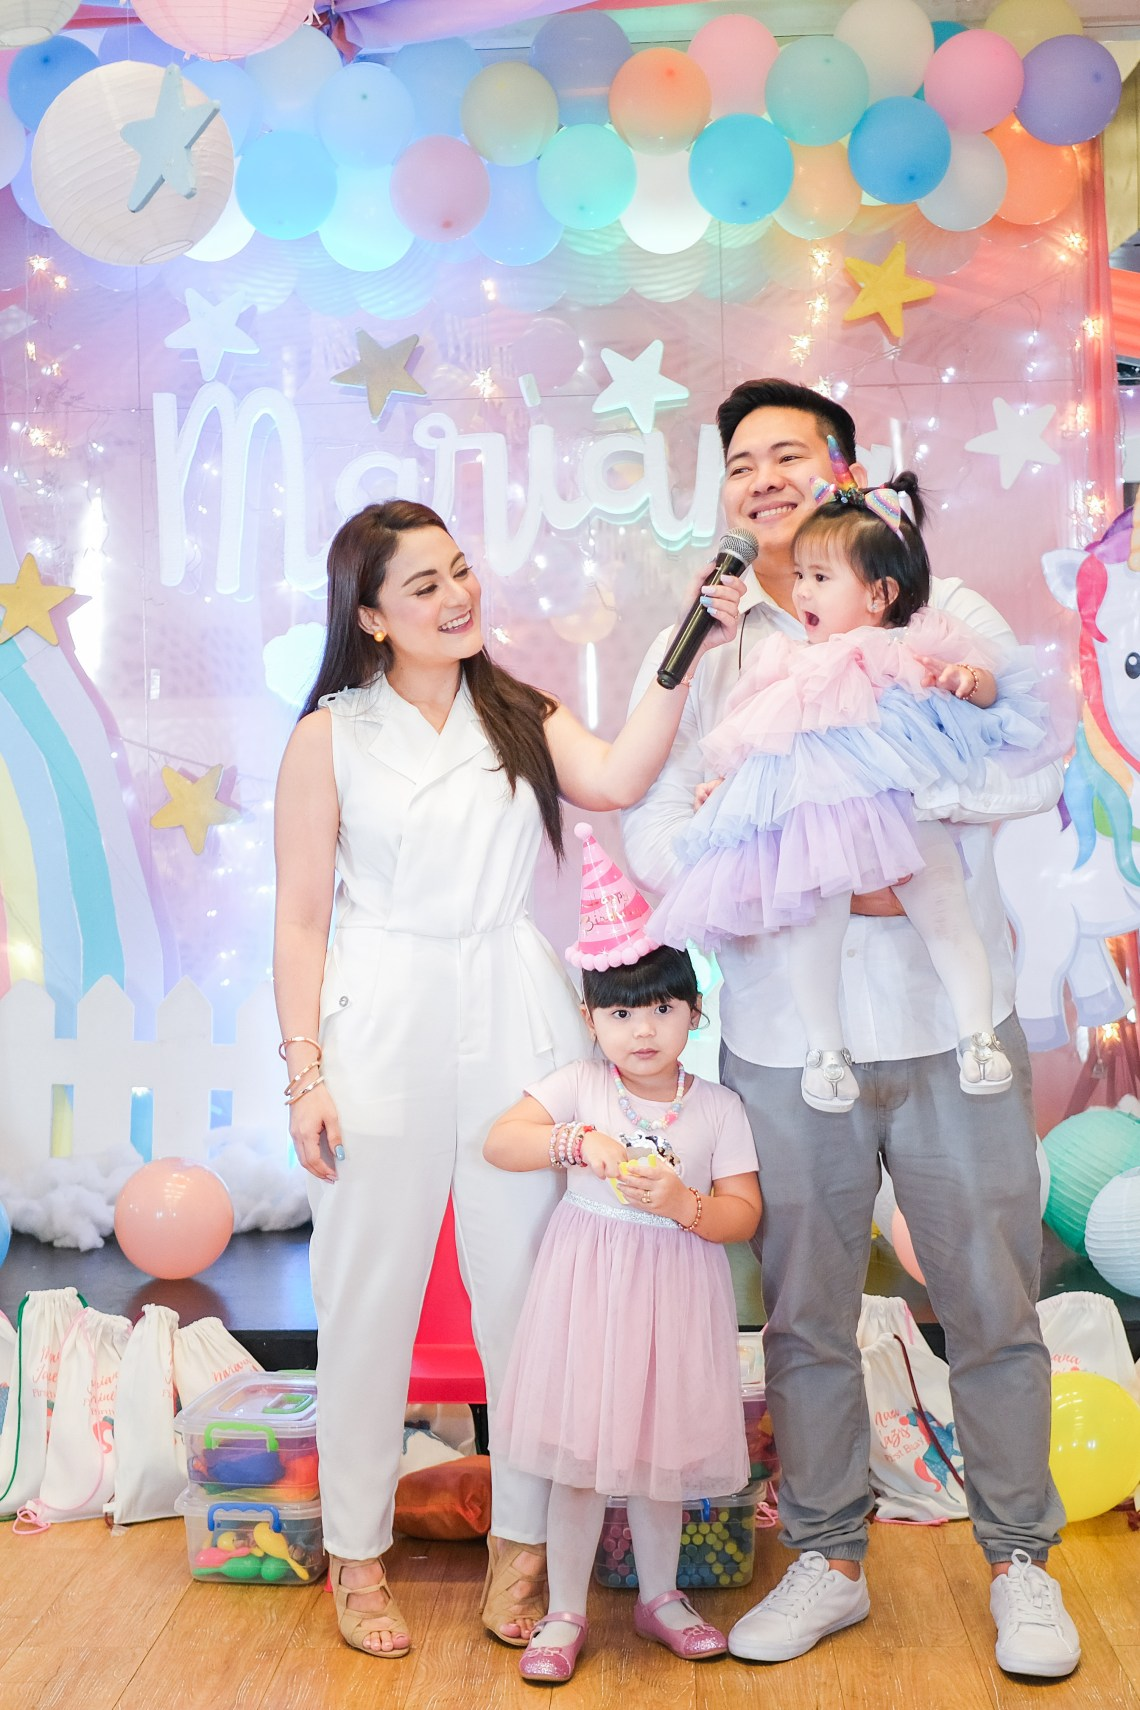 dyosathemomma: First Birthday party Ideas-unicorn theme-Mariana Jazrine-Amaria Niszha-mommy blogger ph-sweets corner-kiddie party ideas-Mhyians Photo